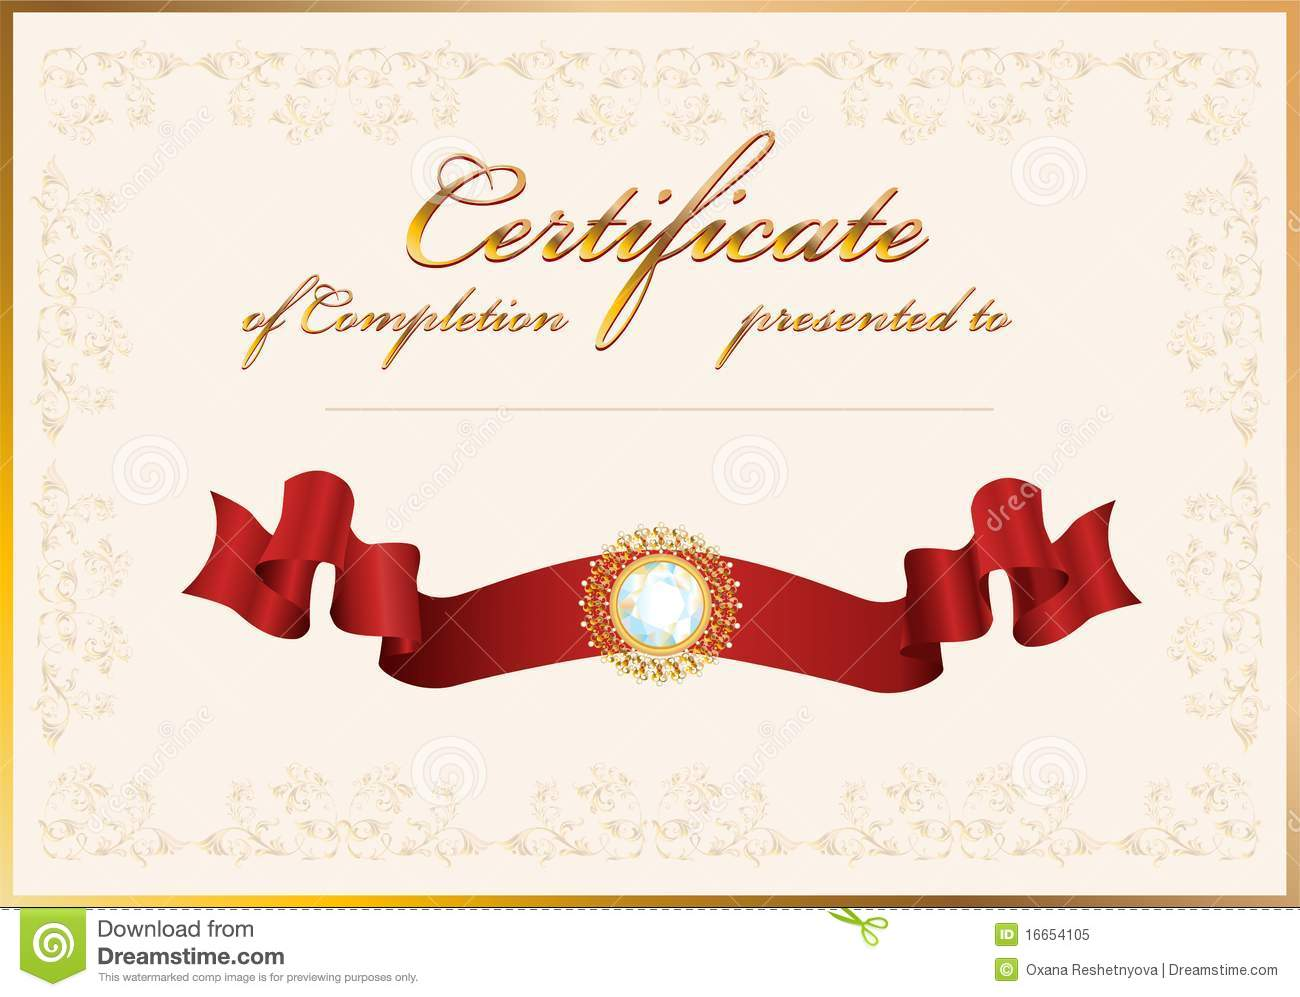 Certificate of completion template stock vector image for Certificate of completion template free download